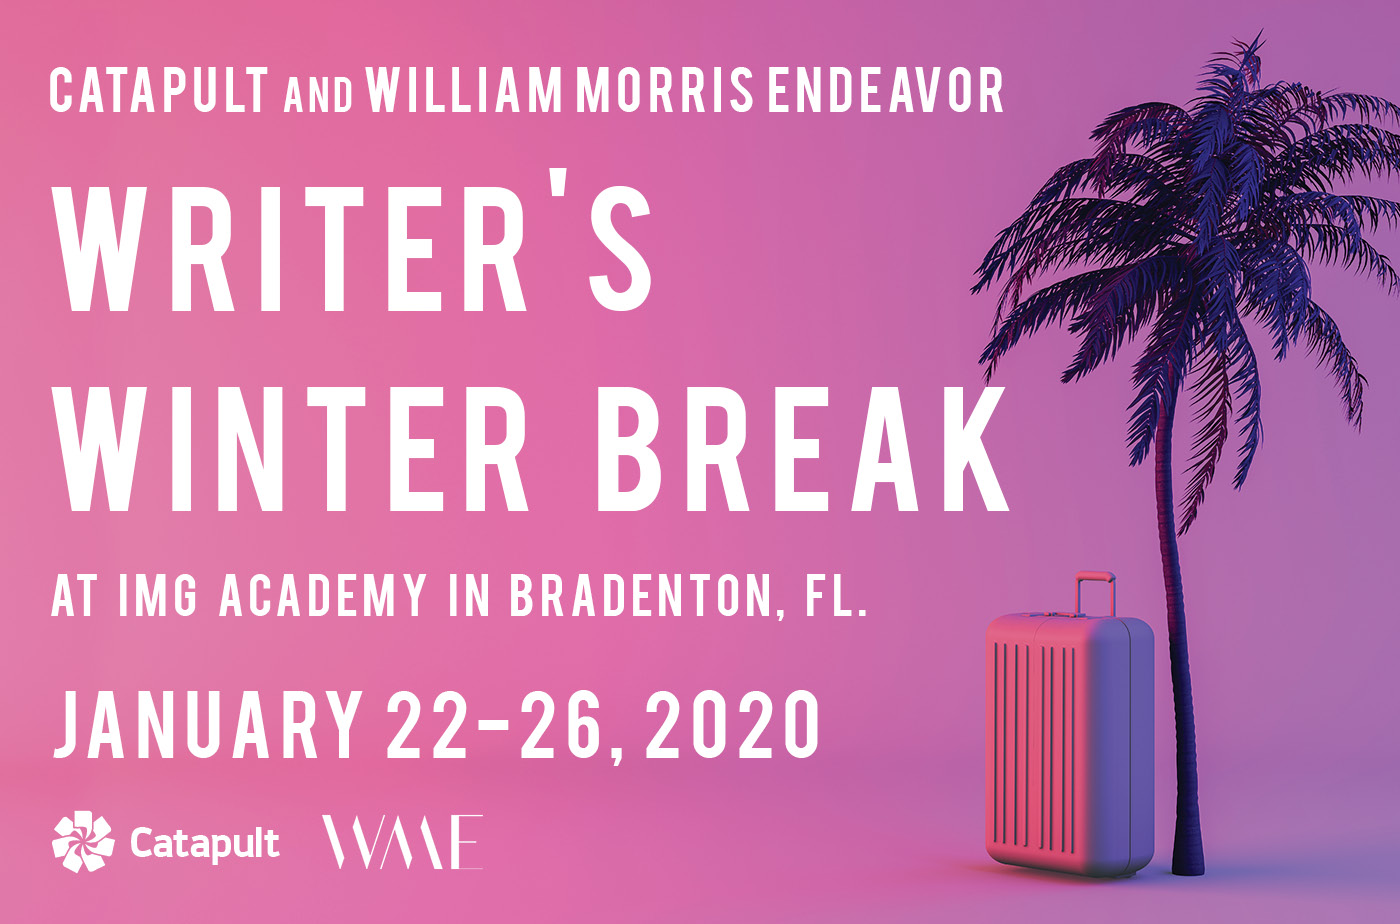 Catapult  classes: Catapult and William Morris Endeavor, Writer's Winter Break 2020, Open-Genre, Intensive